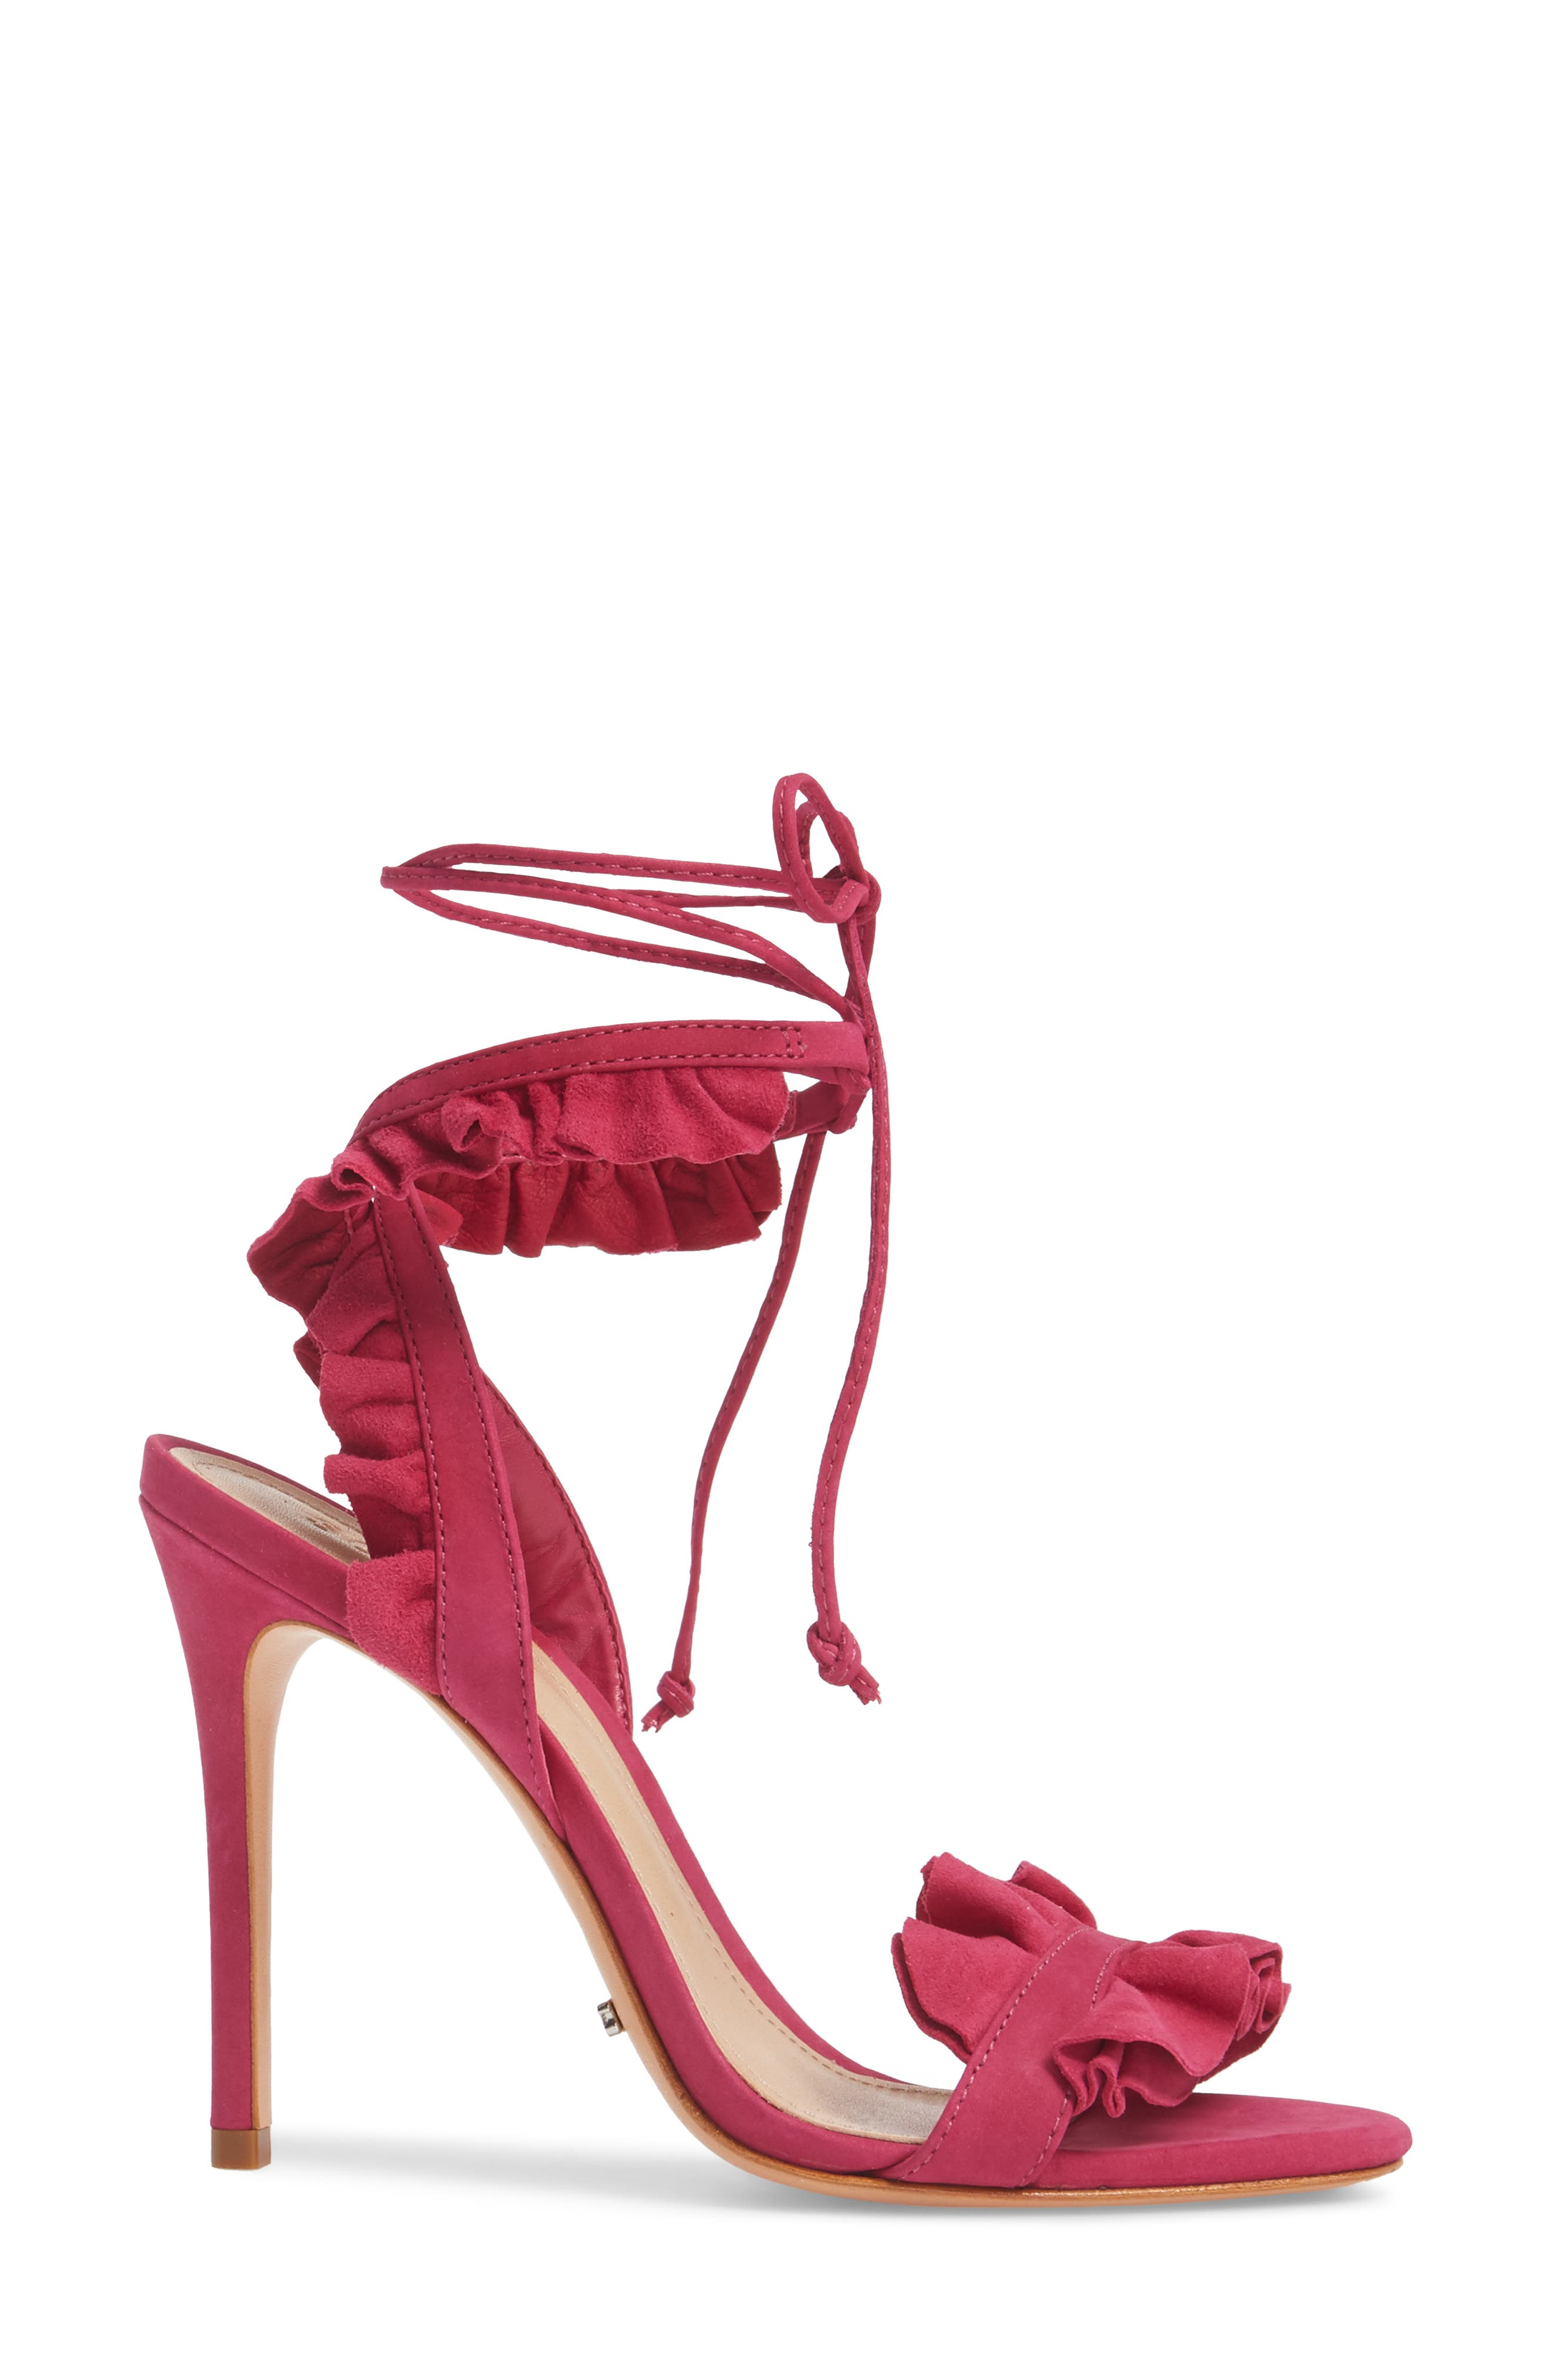 Irem Lace-UP Sandal,                             Alternate thumbnail 3, color,                             Bright Rose Nubuck Leather